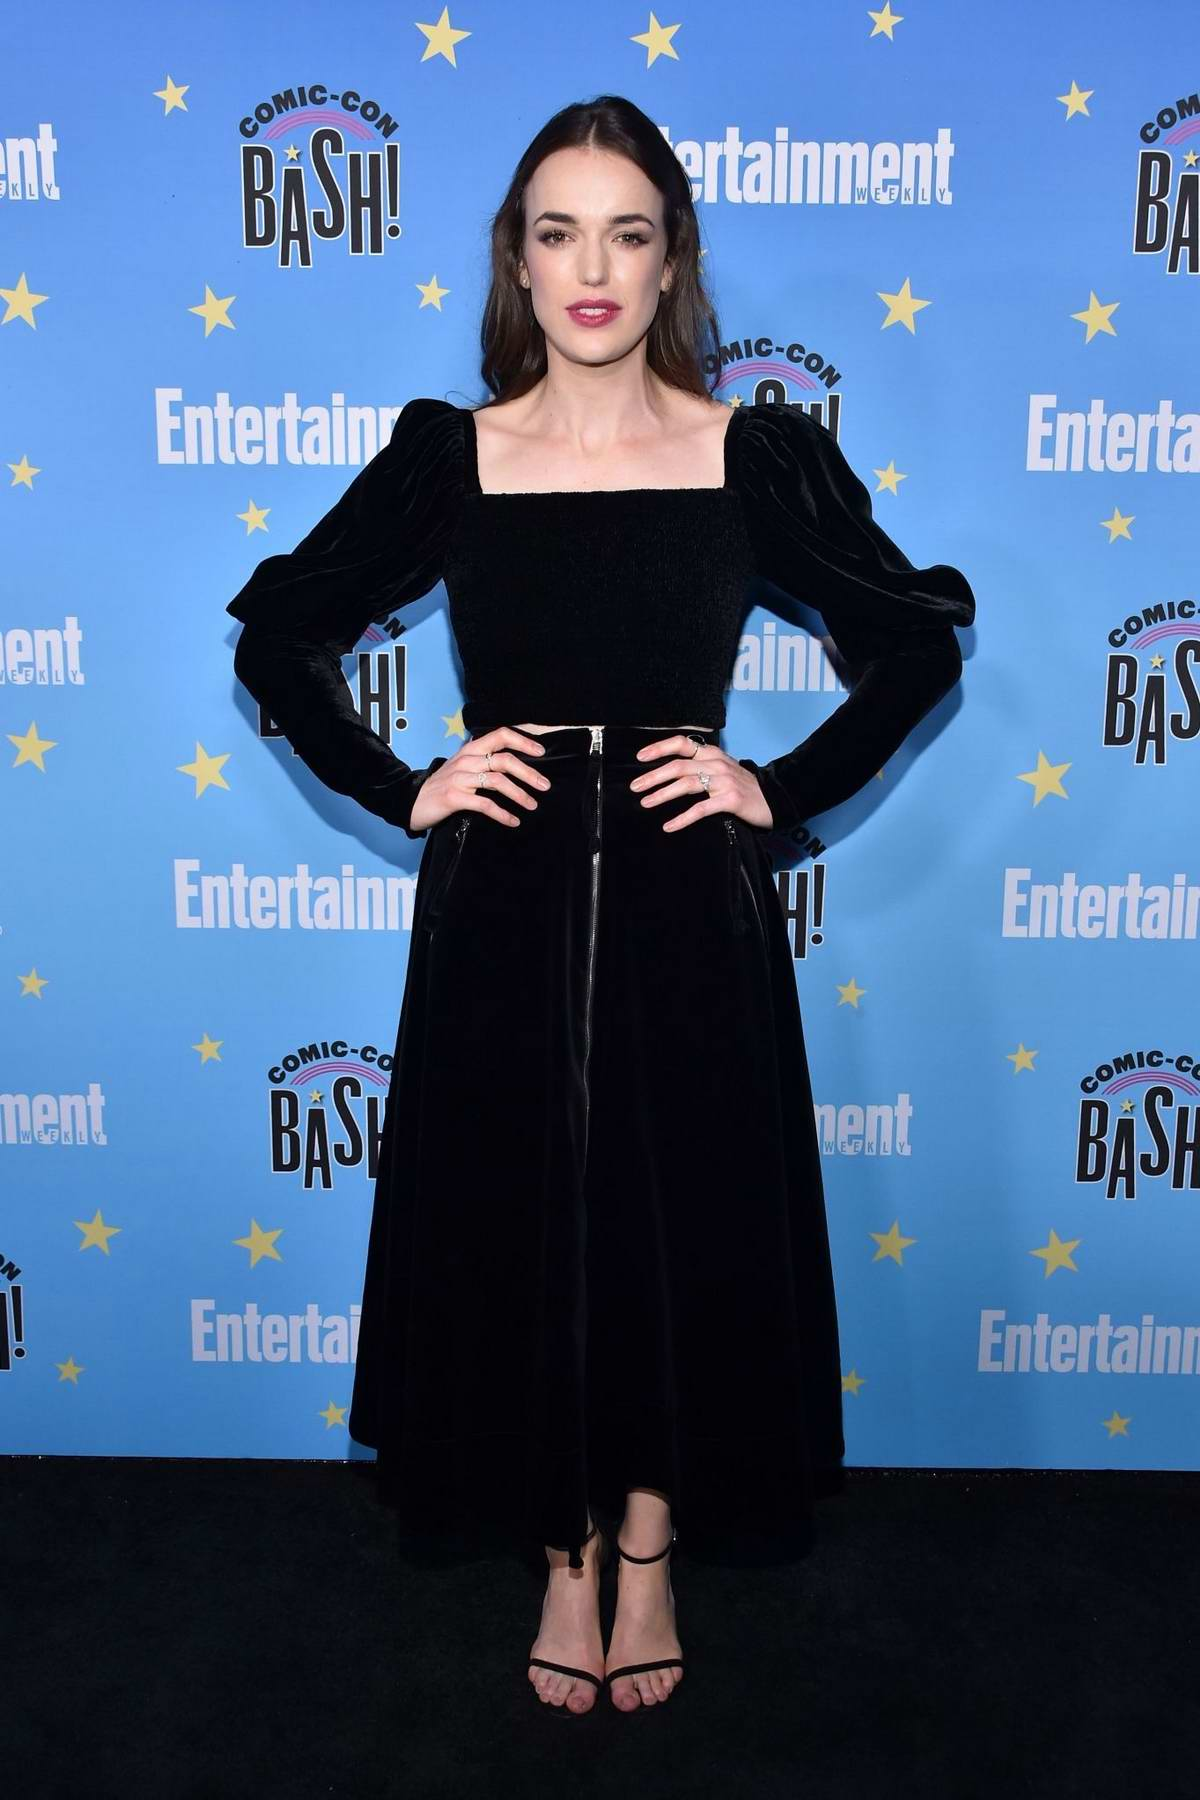 Elizabeth Henstridge attends Entertainment Weekly's 2019 Comic-Con Bash held at FLOAT, Hard Rock Hotel in San Diego, California